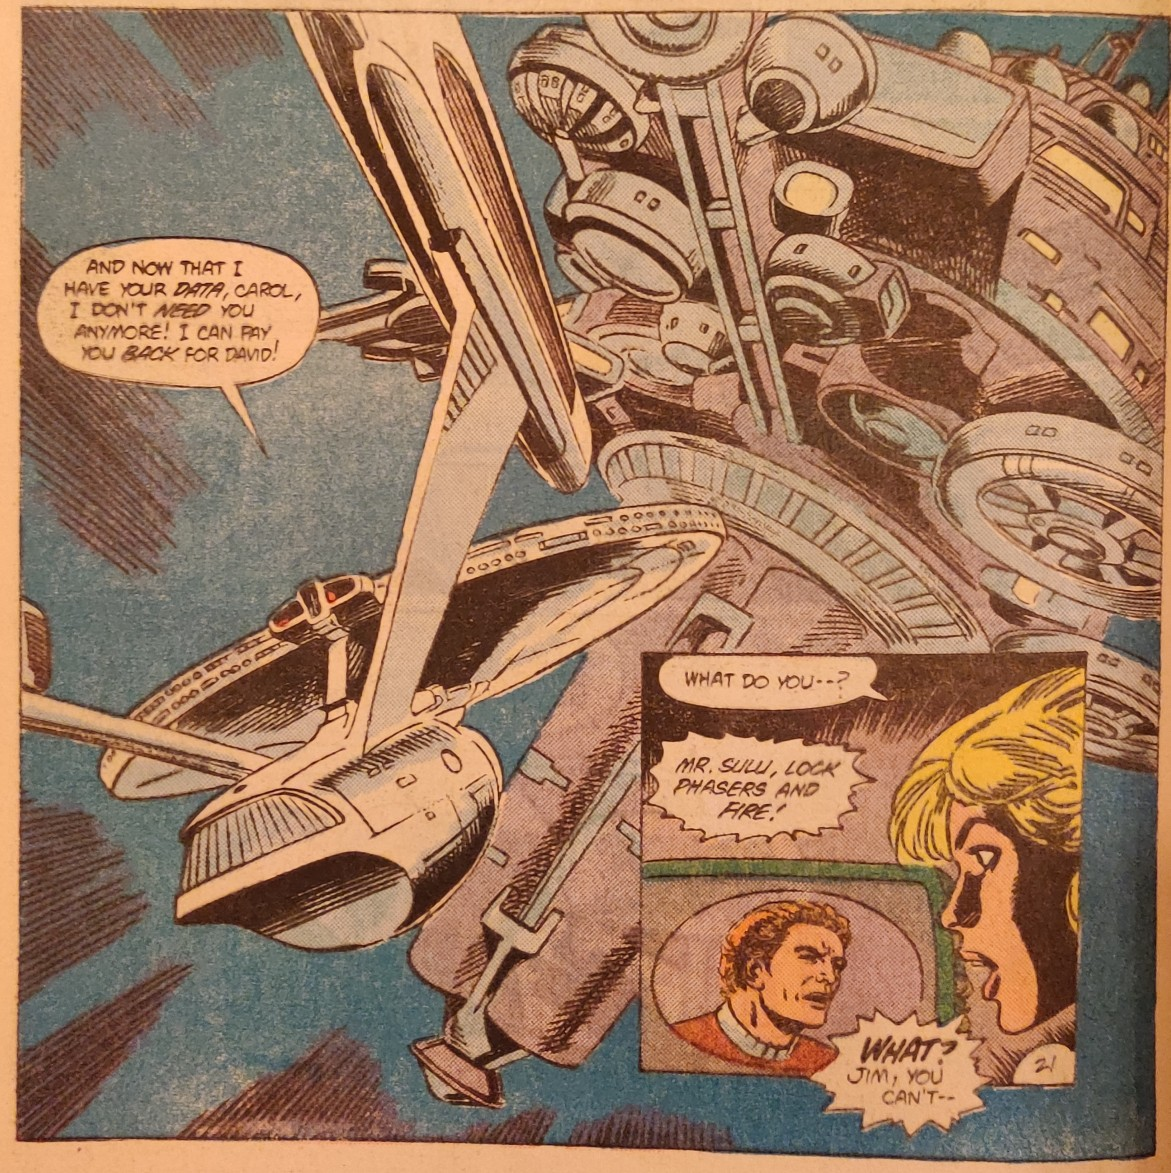 DC Comics Star Trek Issue 9 - He Most Certainly Can